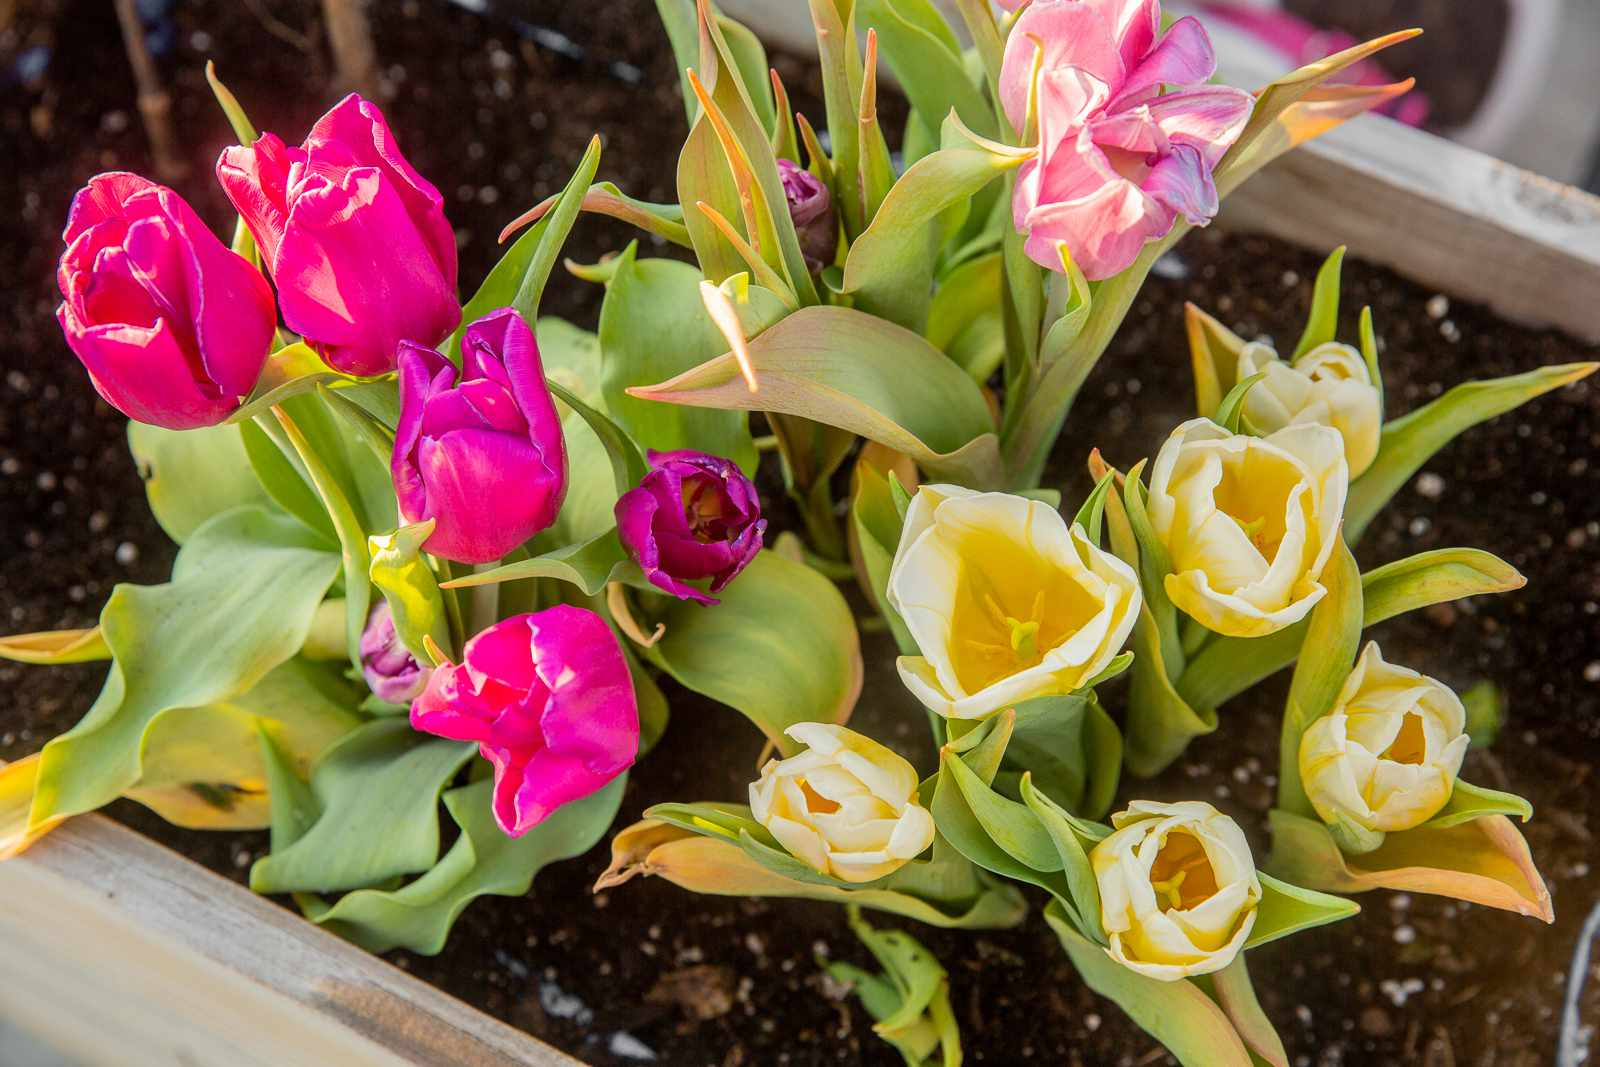 Colorful tulips with cream, pink, and fuchsia petals in flower box